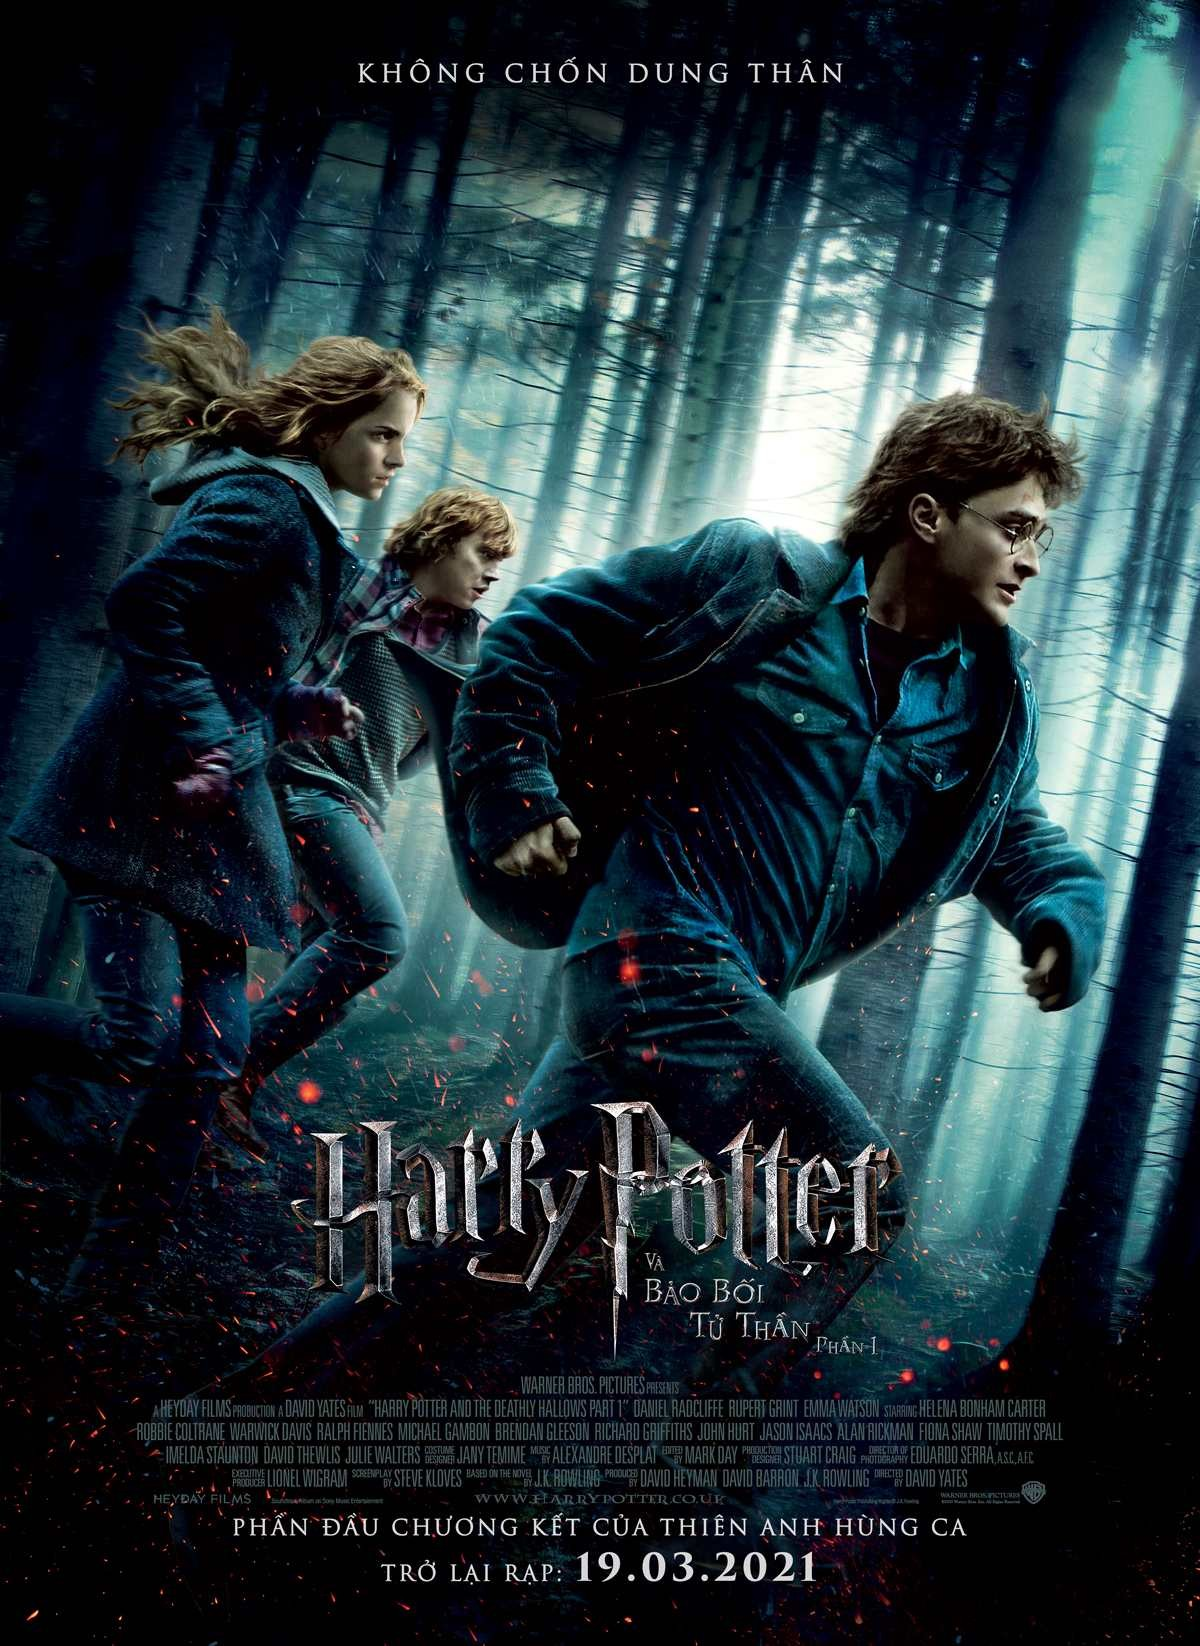 HARRY POTTER AND THE DEATHLY HALLOWS (Pt.1)